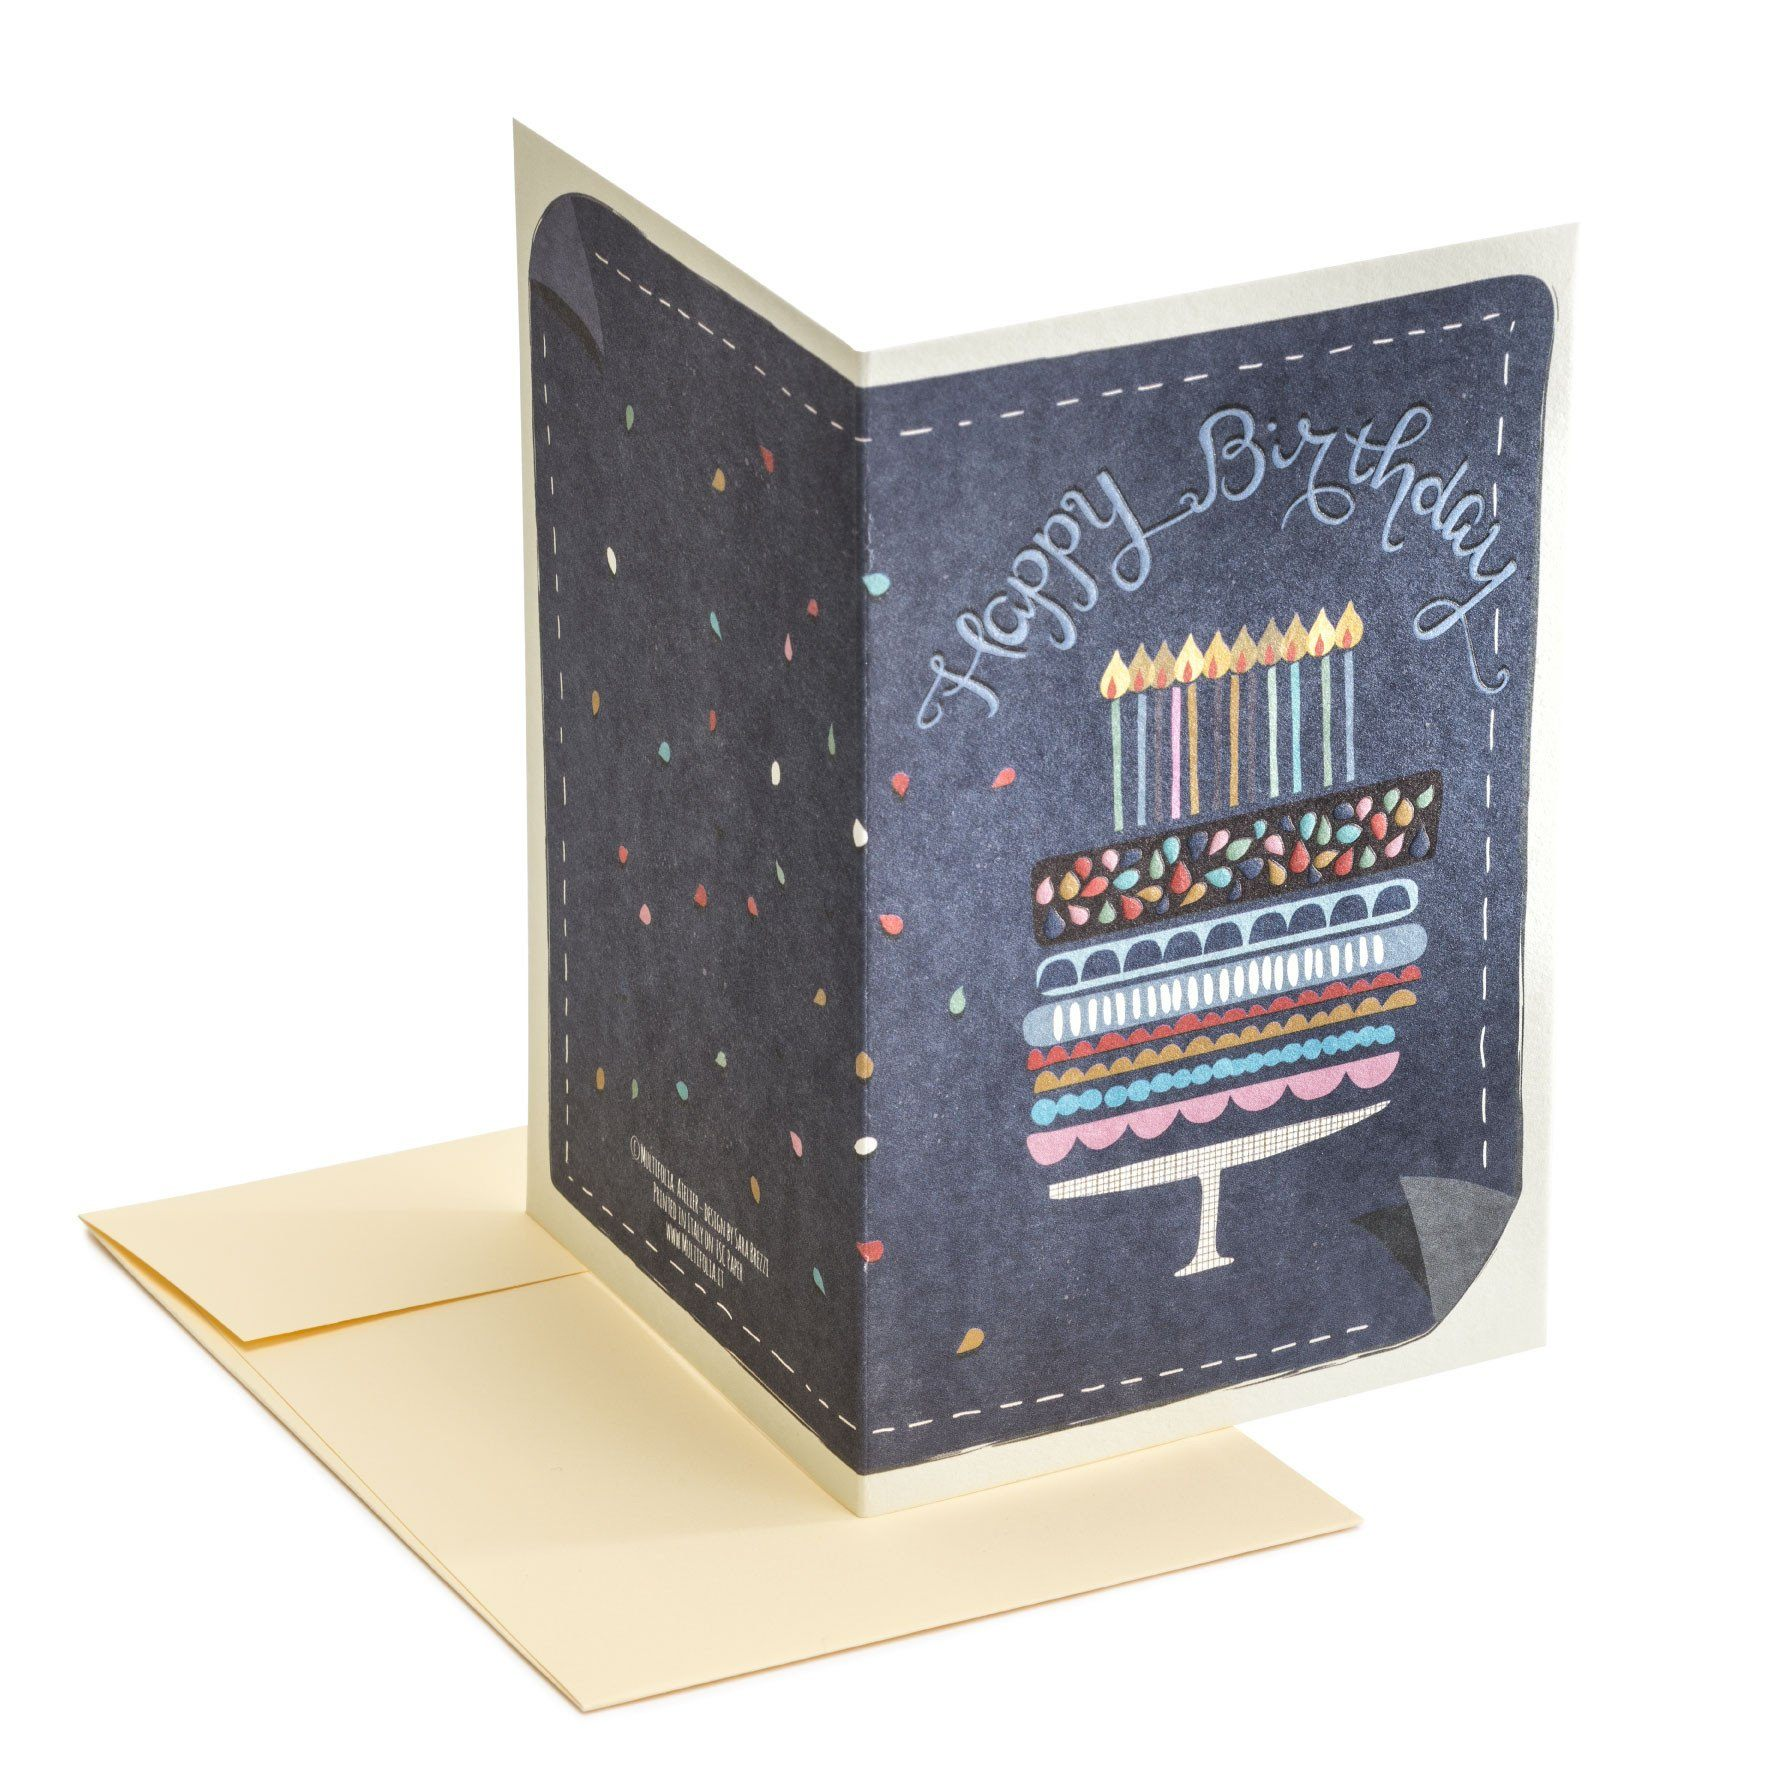 Birthday cake Greeting Card - Birthday Cards - MULTIFOLIA ATELIER di Rita Girola - Naiise